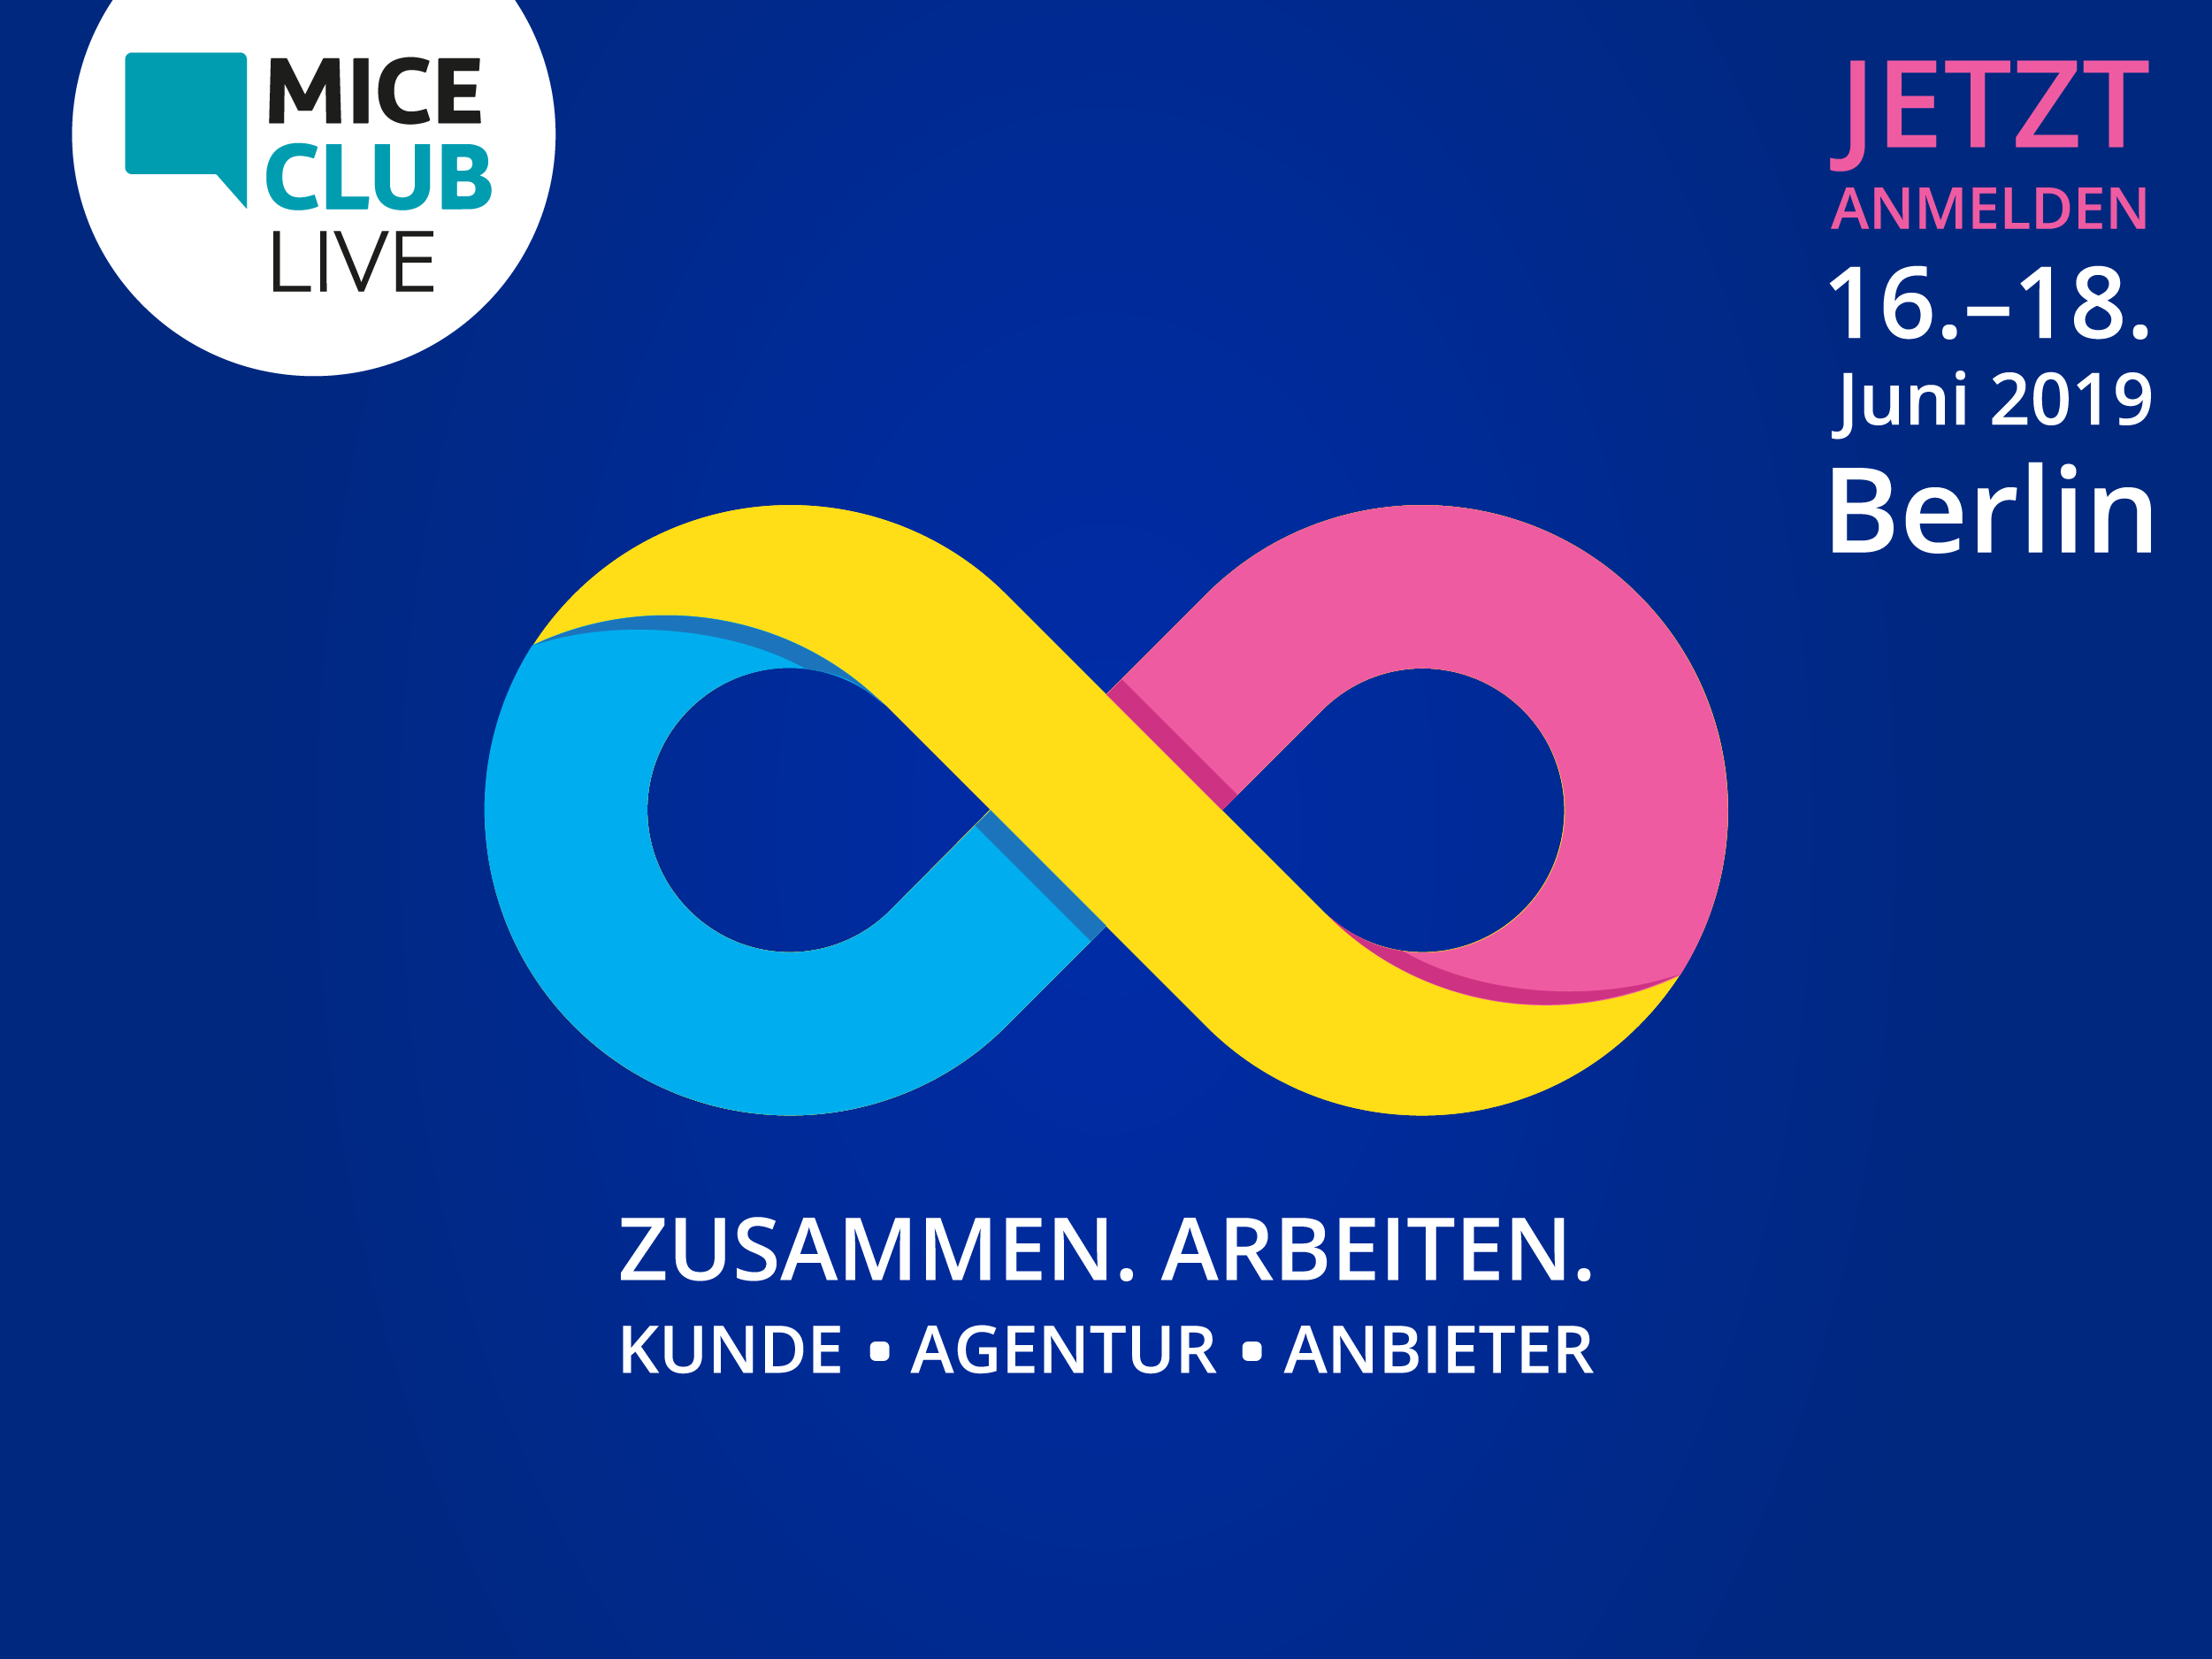 MICE Club LIVE – Berlin